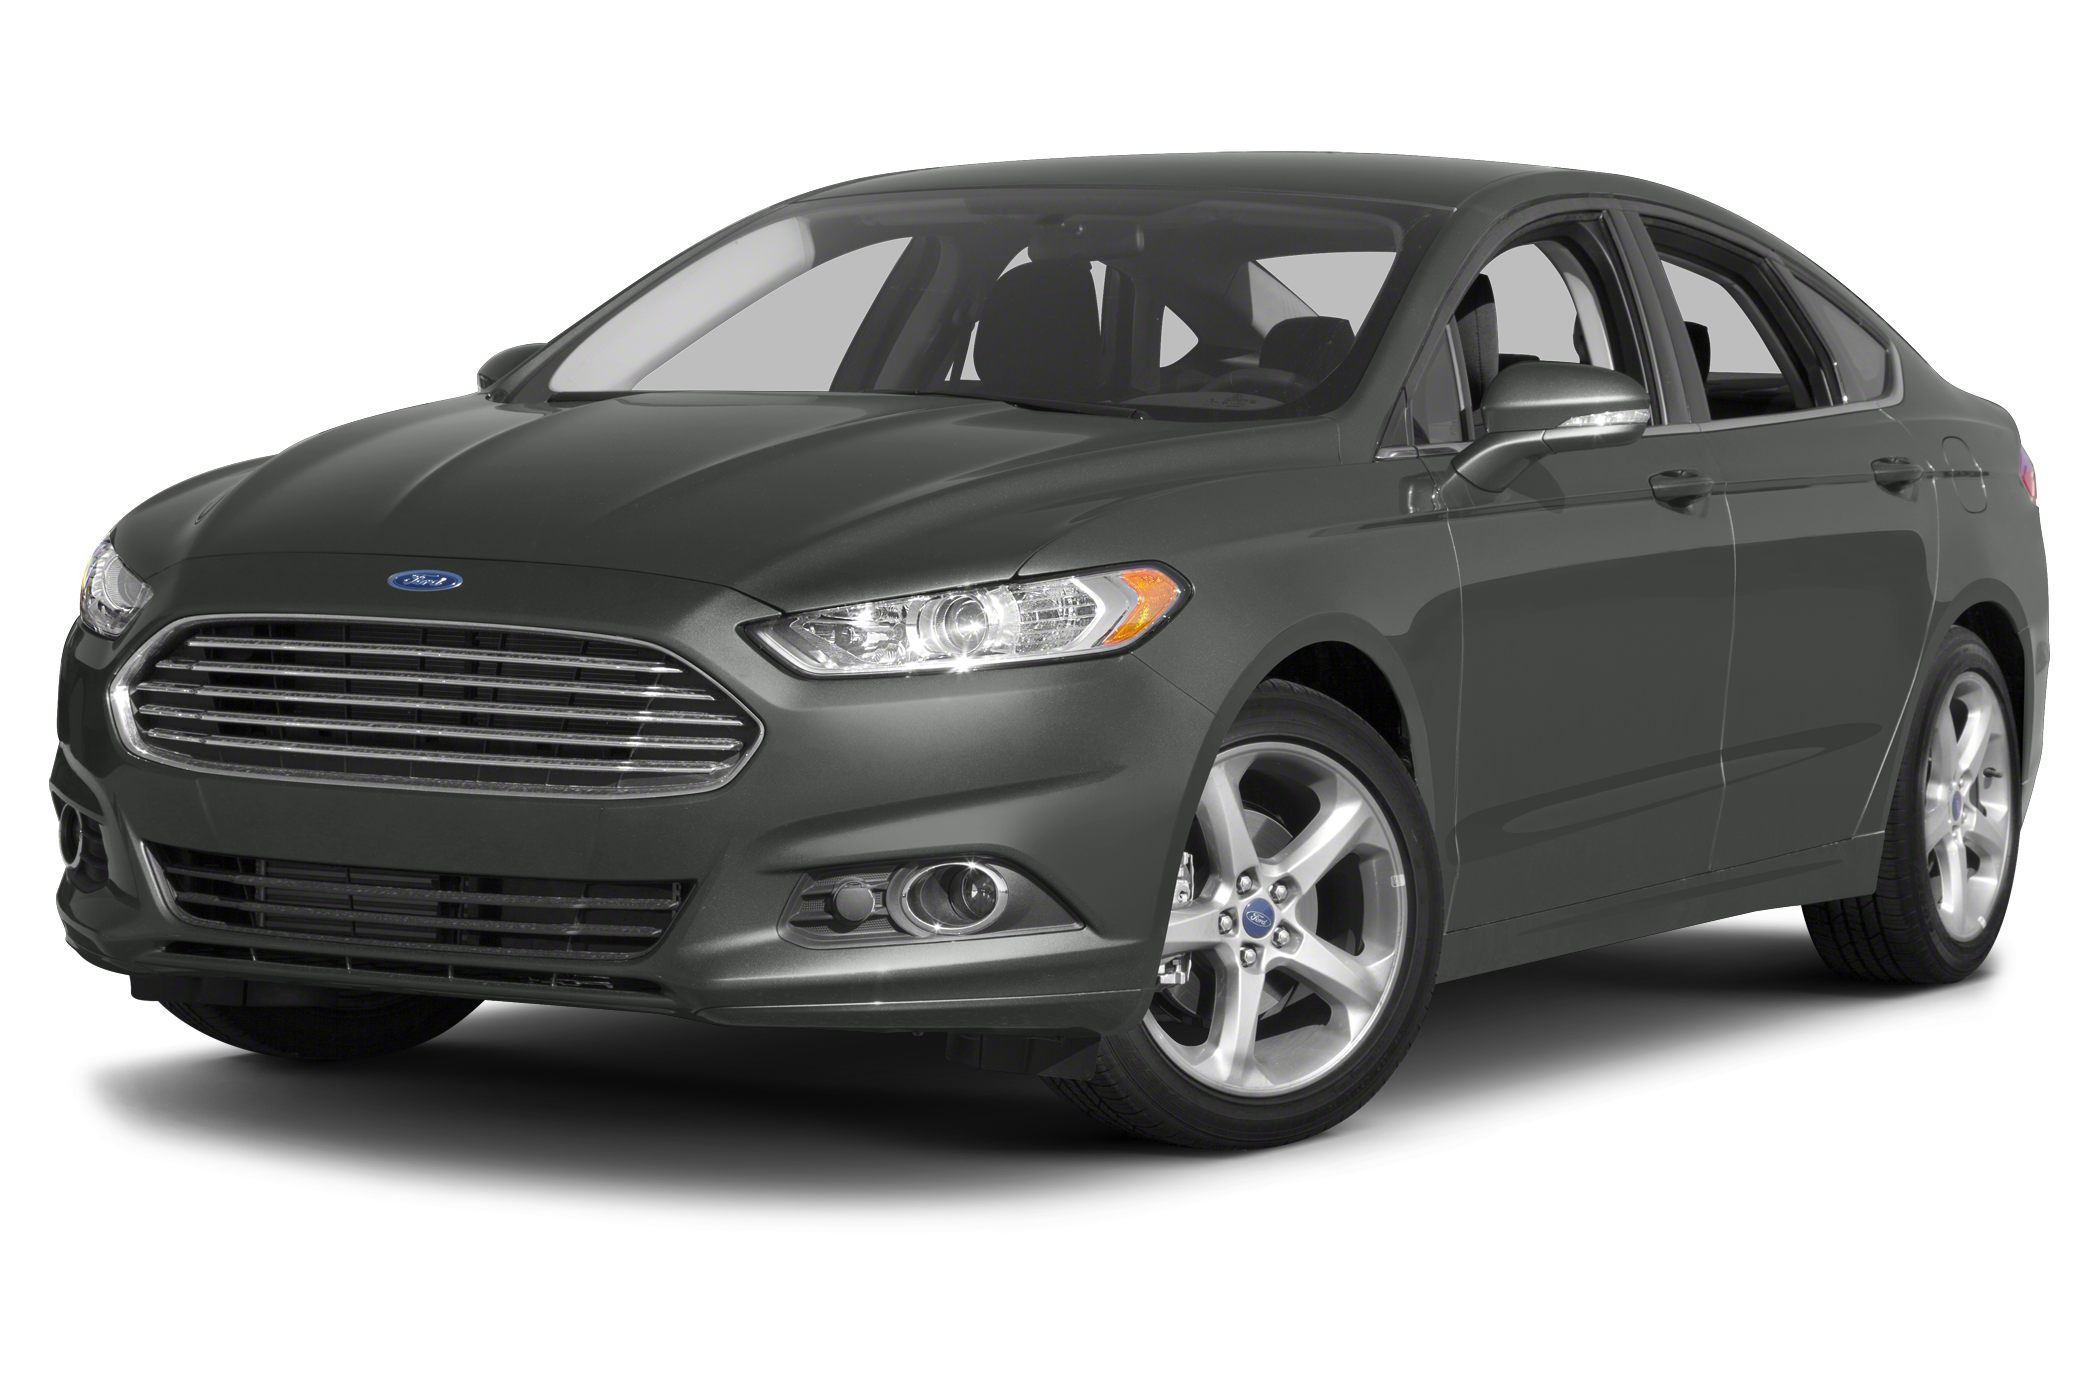 2014 Ford Fusion SE Sedan for sale in Louisville for $18,995 with 12,034 miles